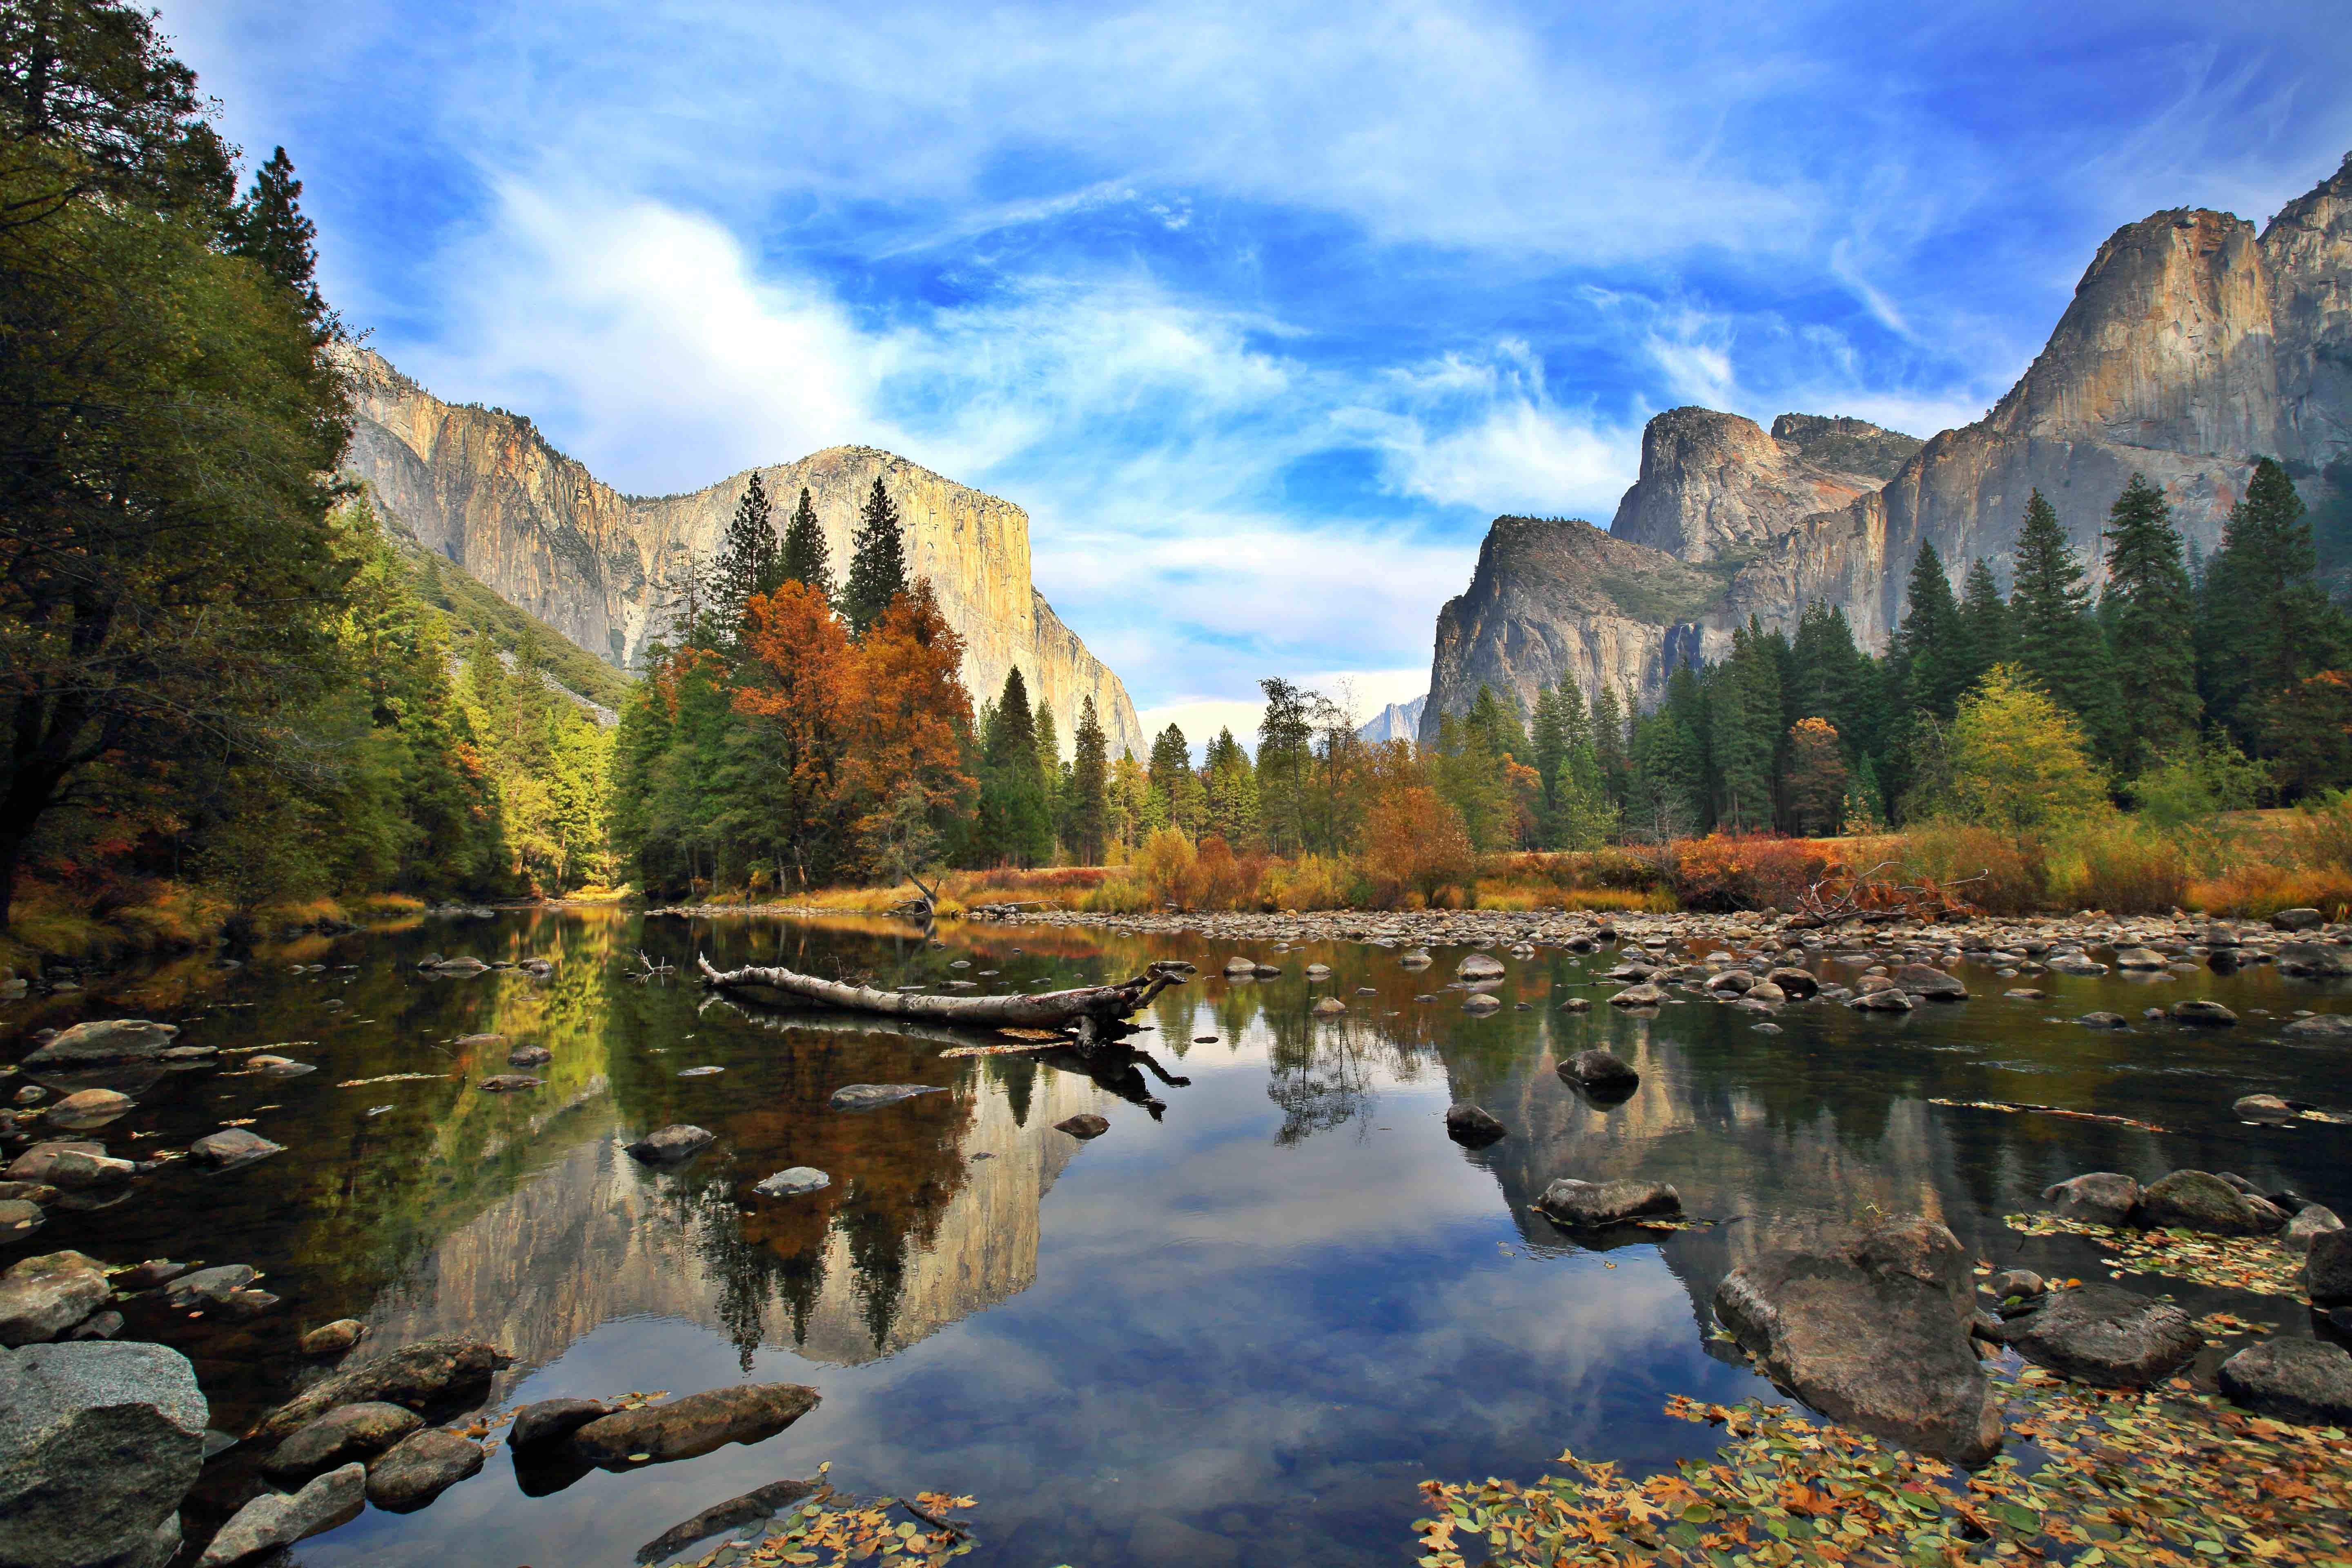 A lake reflects the tall cliffs at Yosemite National Park.